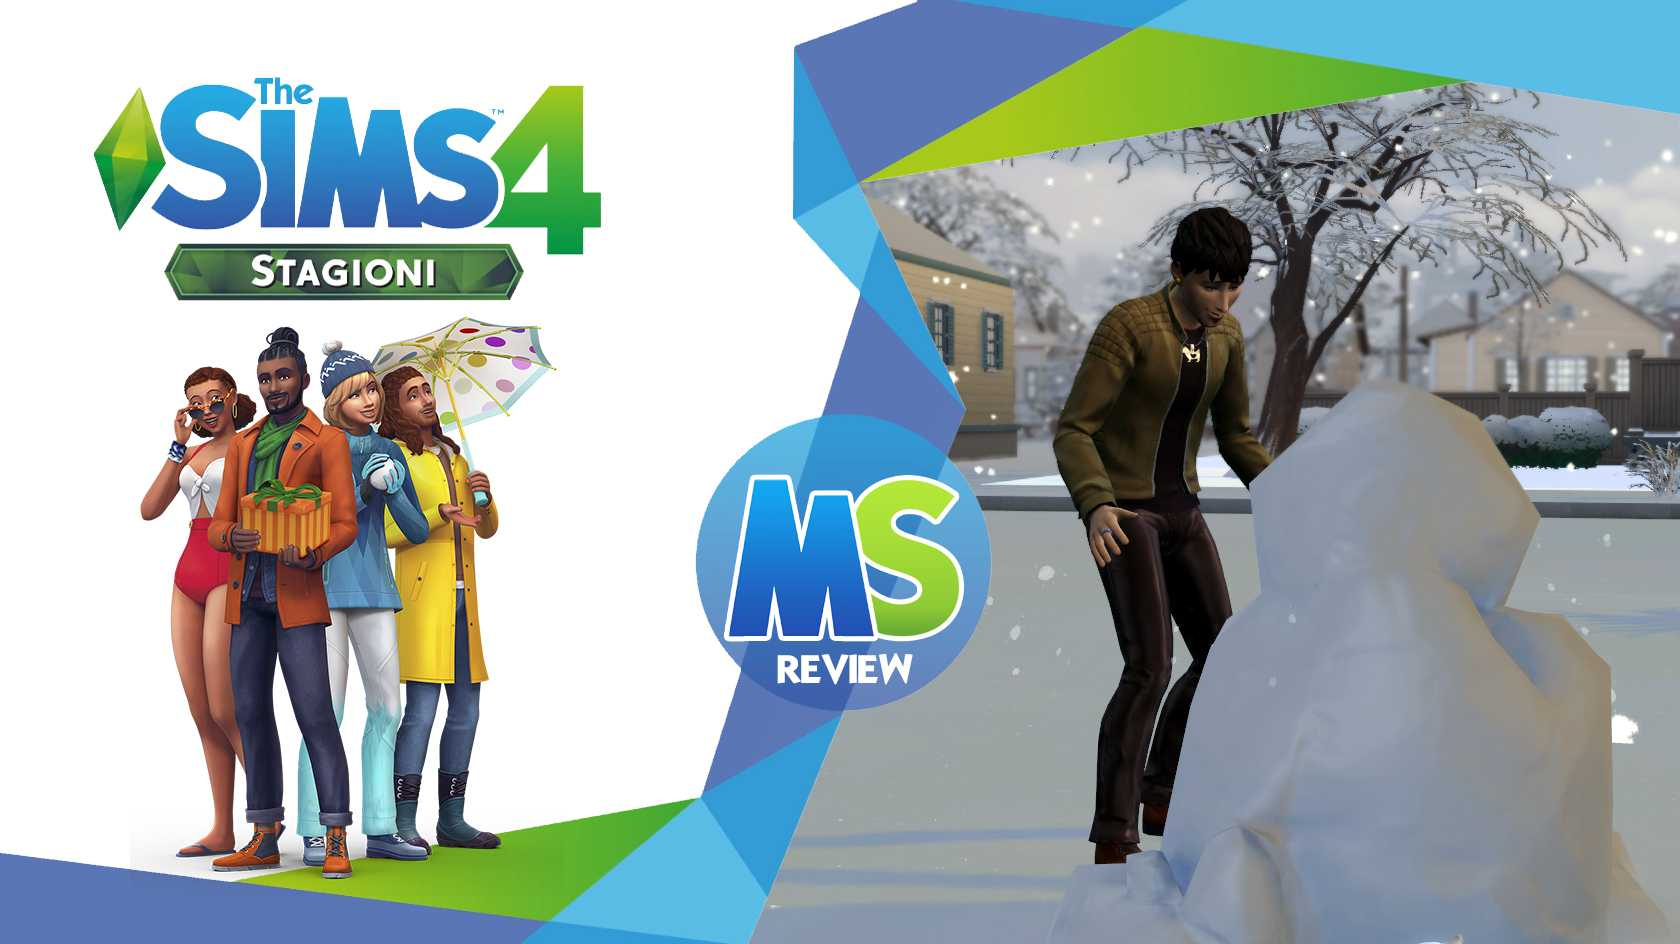 the sims 4 Stagioni review logo